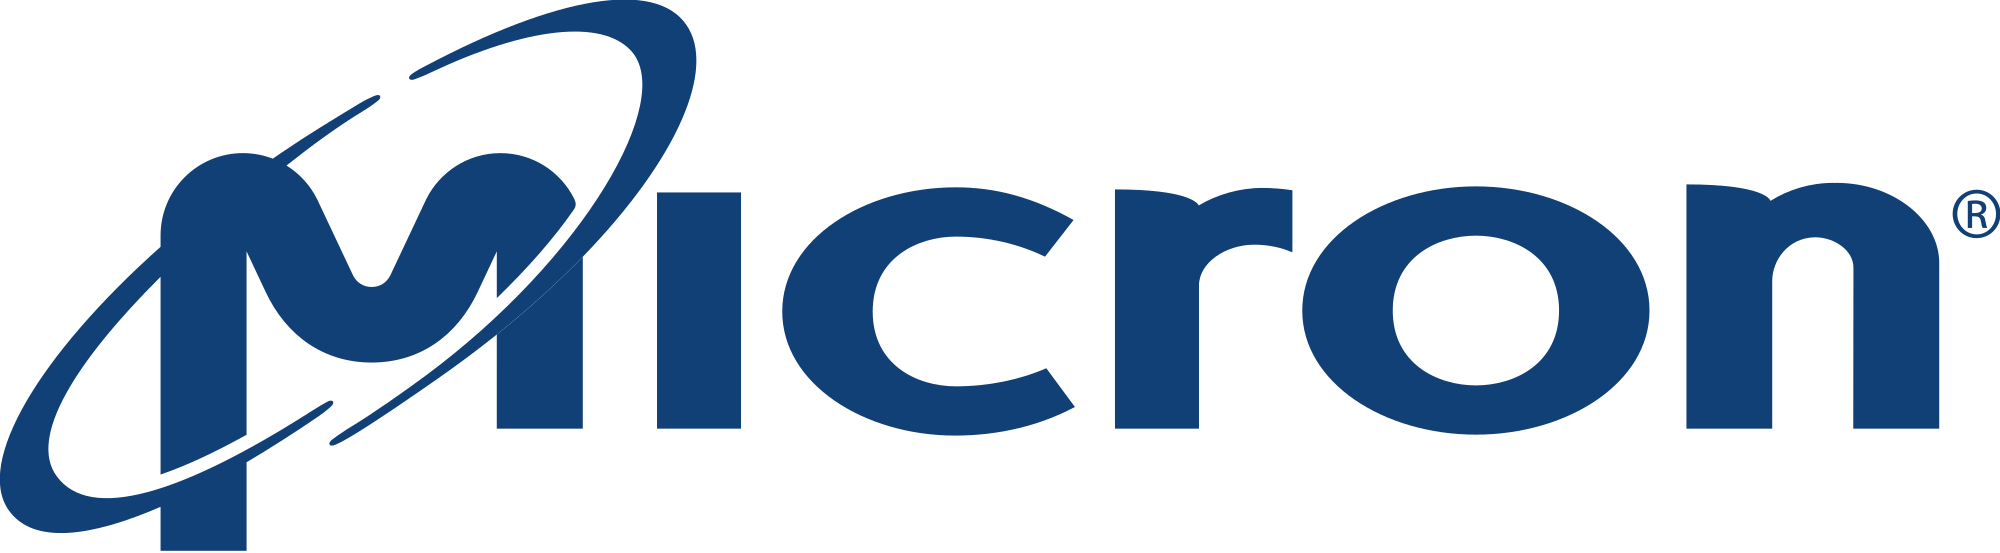 Micron Logo - File:Micron Technology logo.svg - Wikimedia Commons